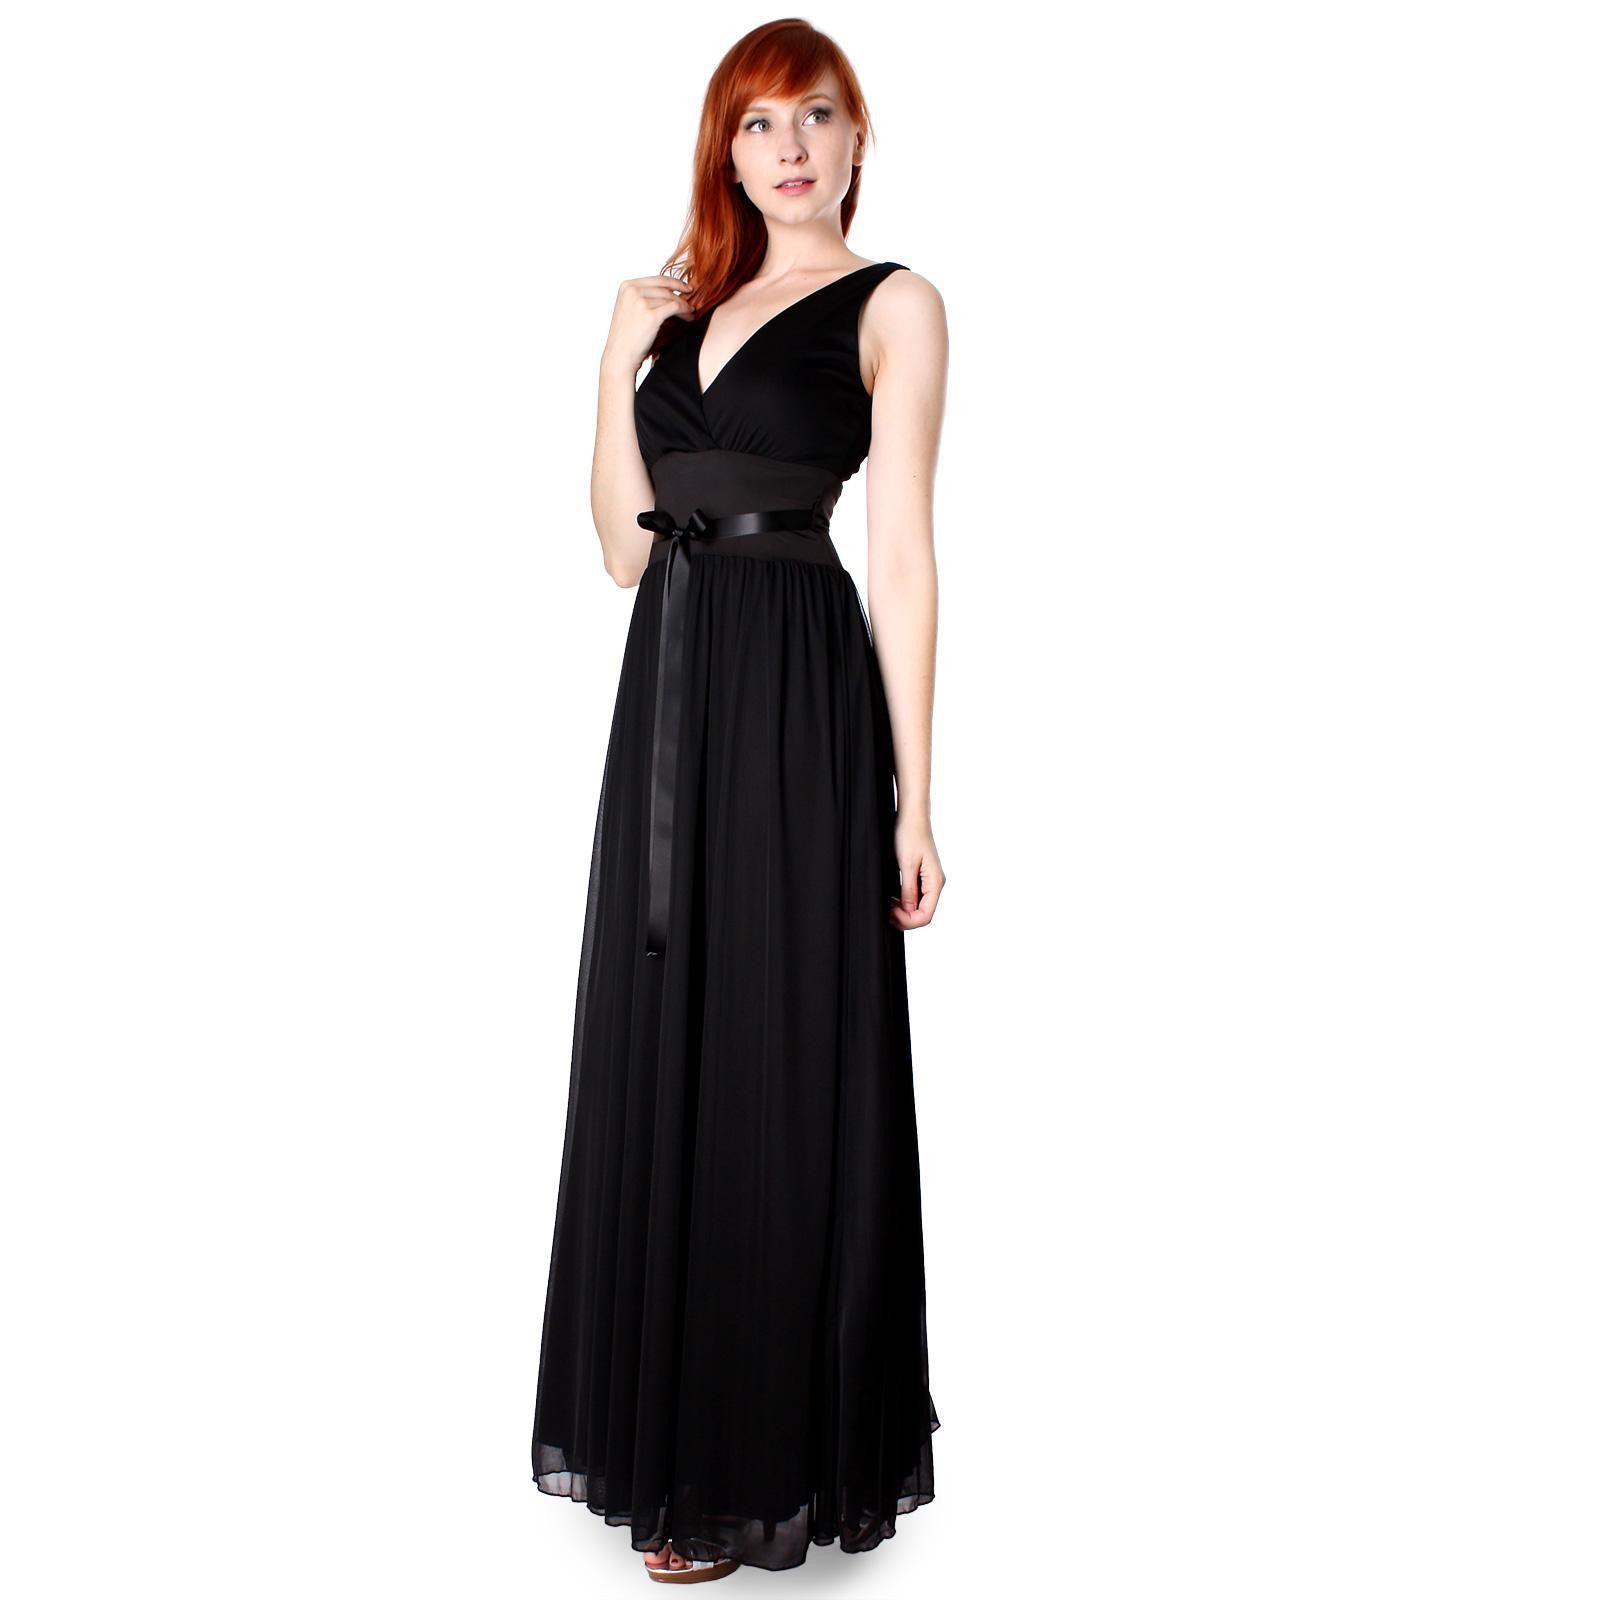 Evanese Women's Chiffon Matte Jersey Elegant Long Dress with Satin Tape - ellemore.com